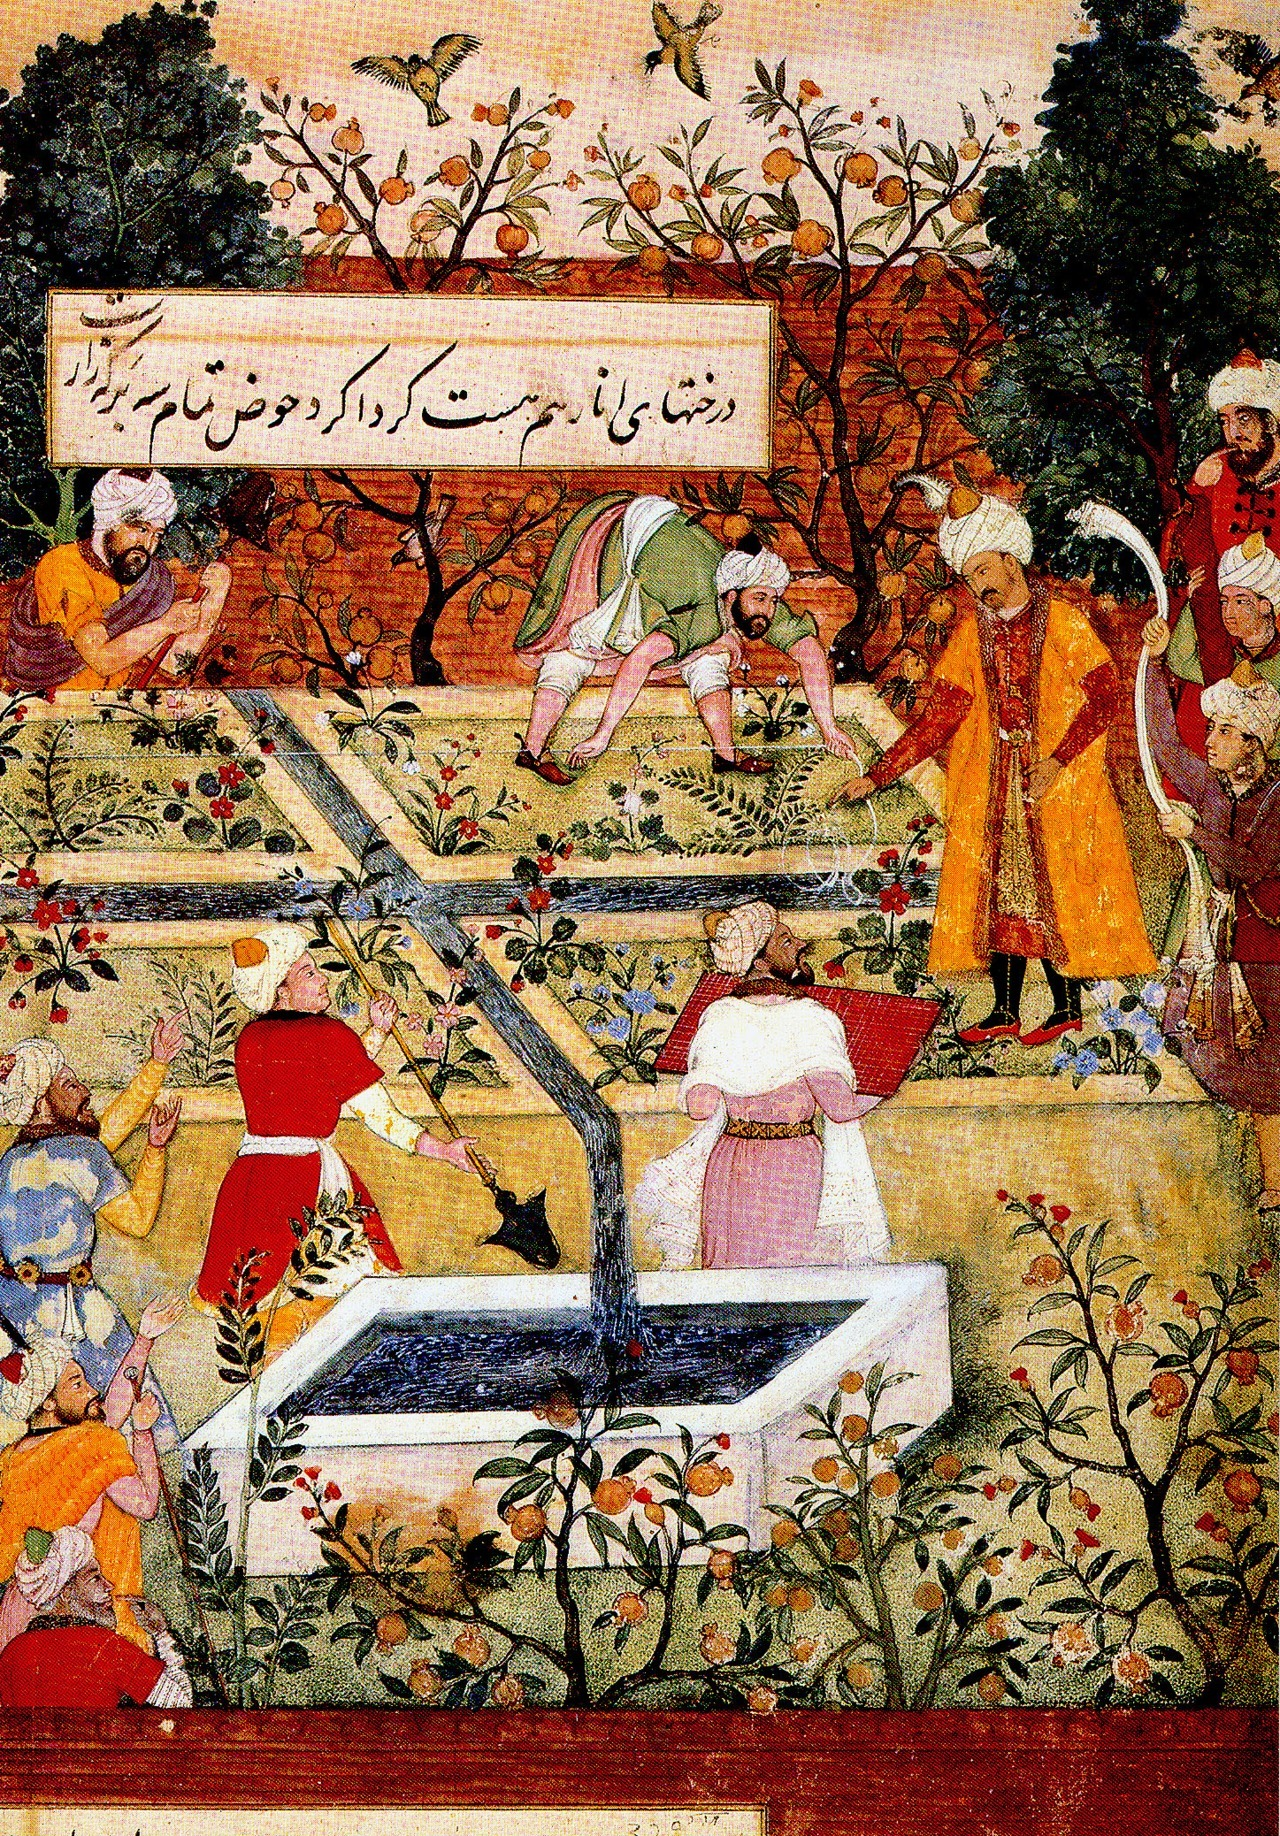 Babur's Garden, Baburnama, 16th c. British Library